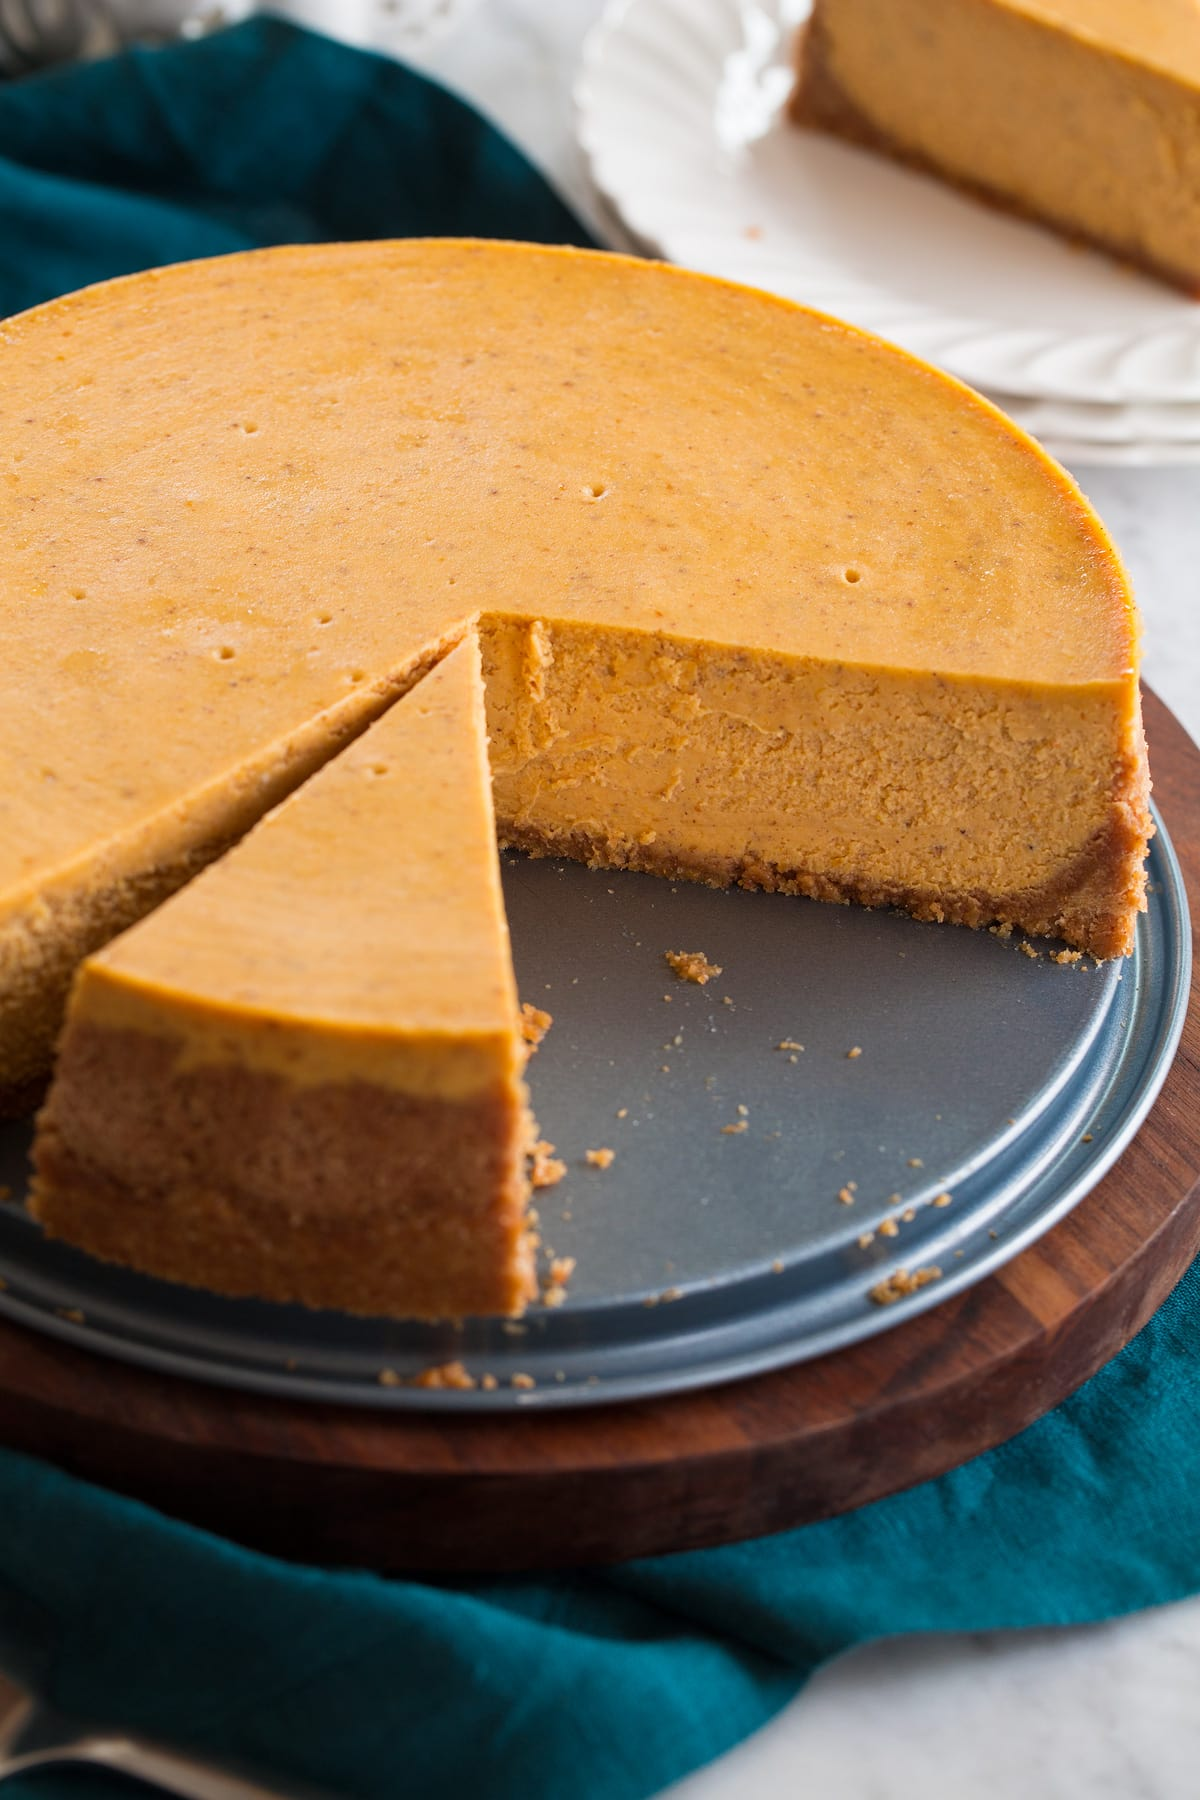 Nearly whole pumpkin cheesecake shown on a platter with a slice cut.